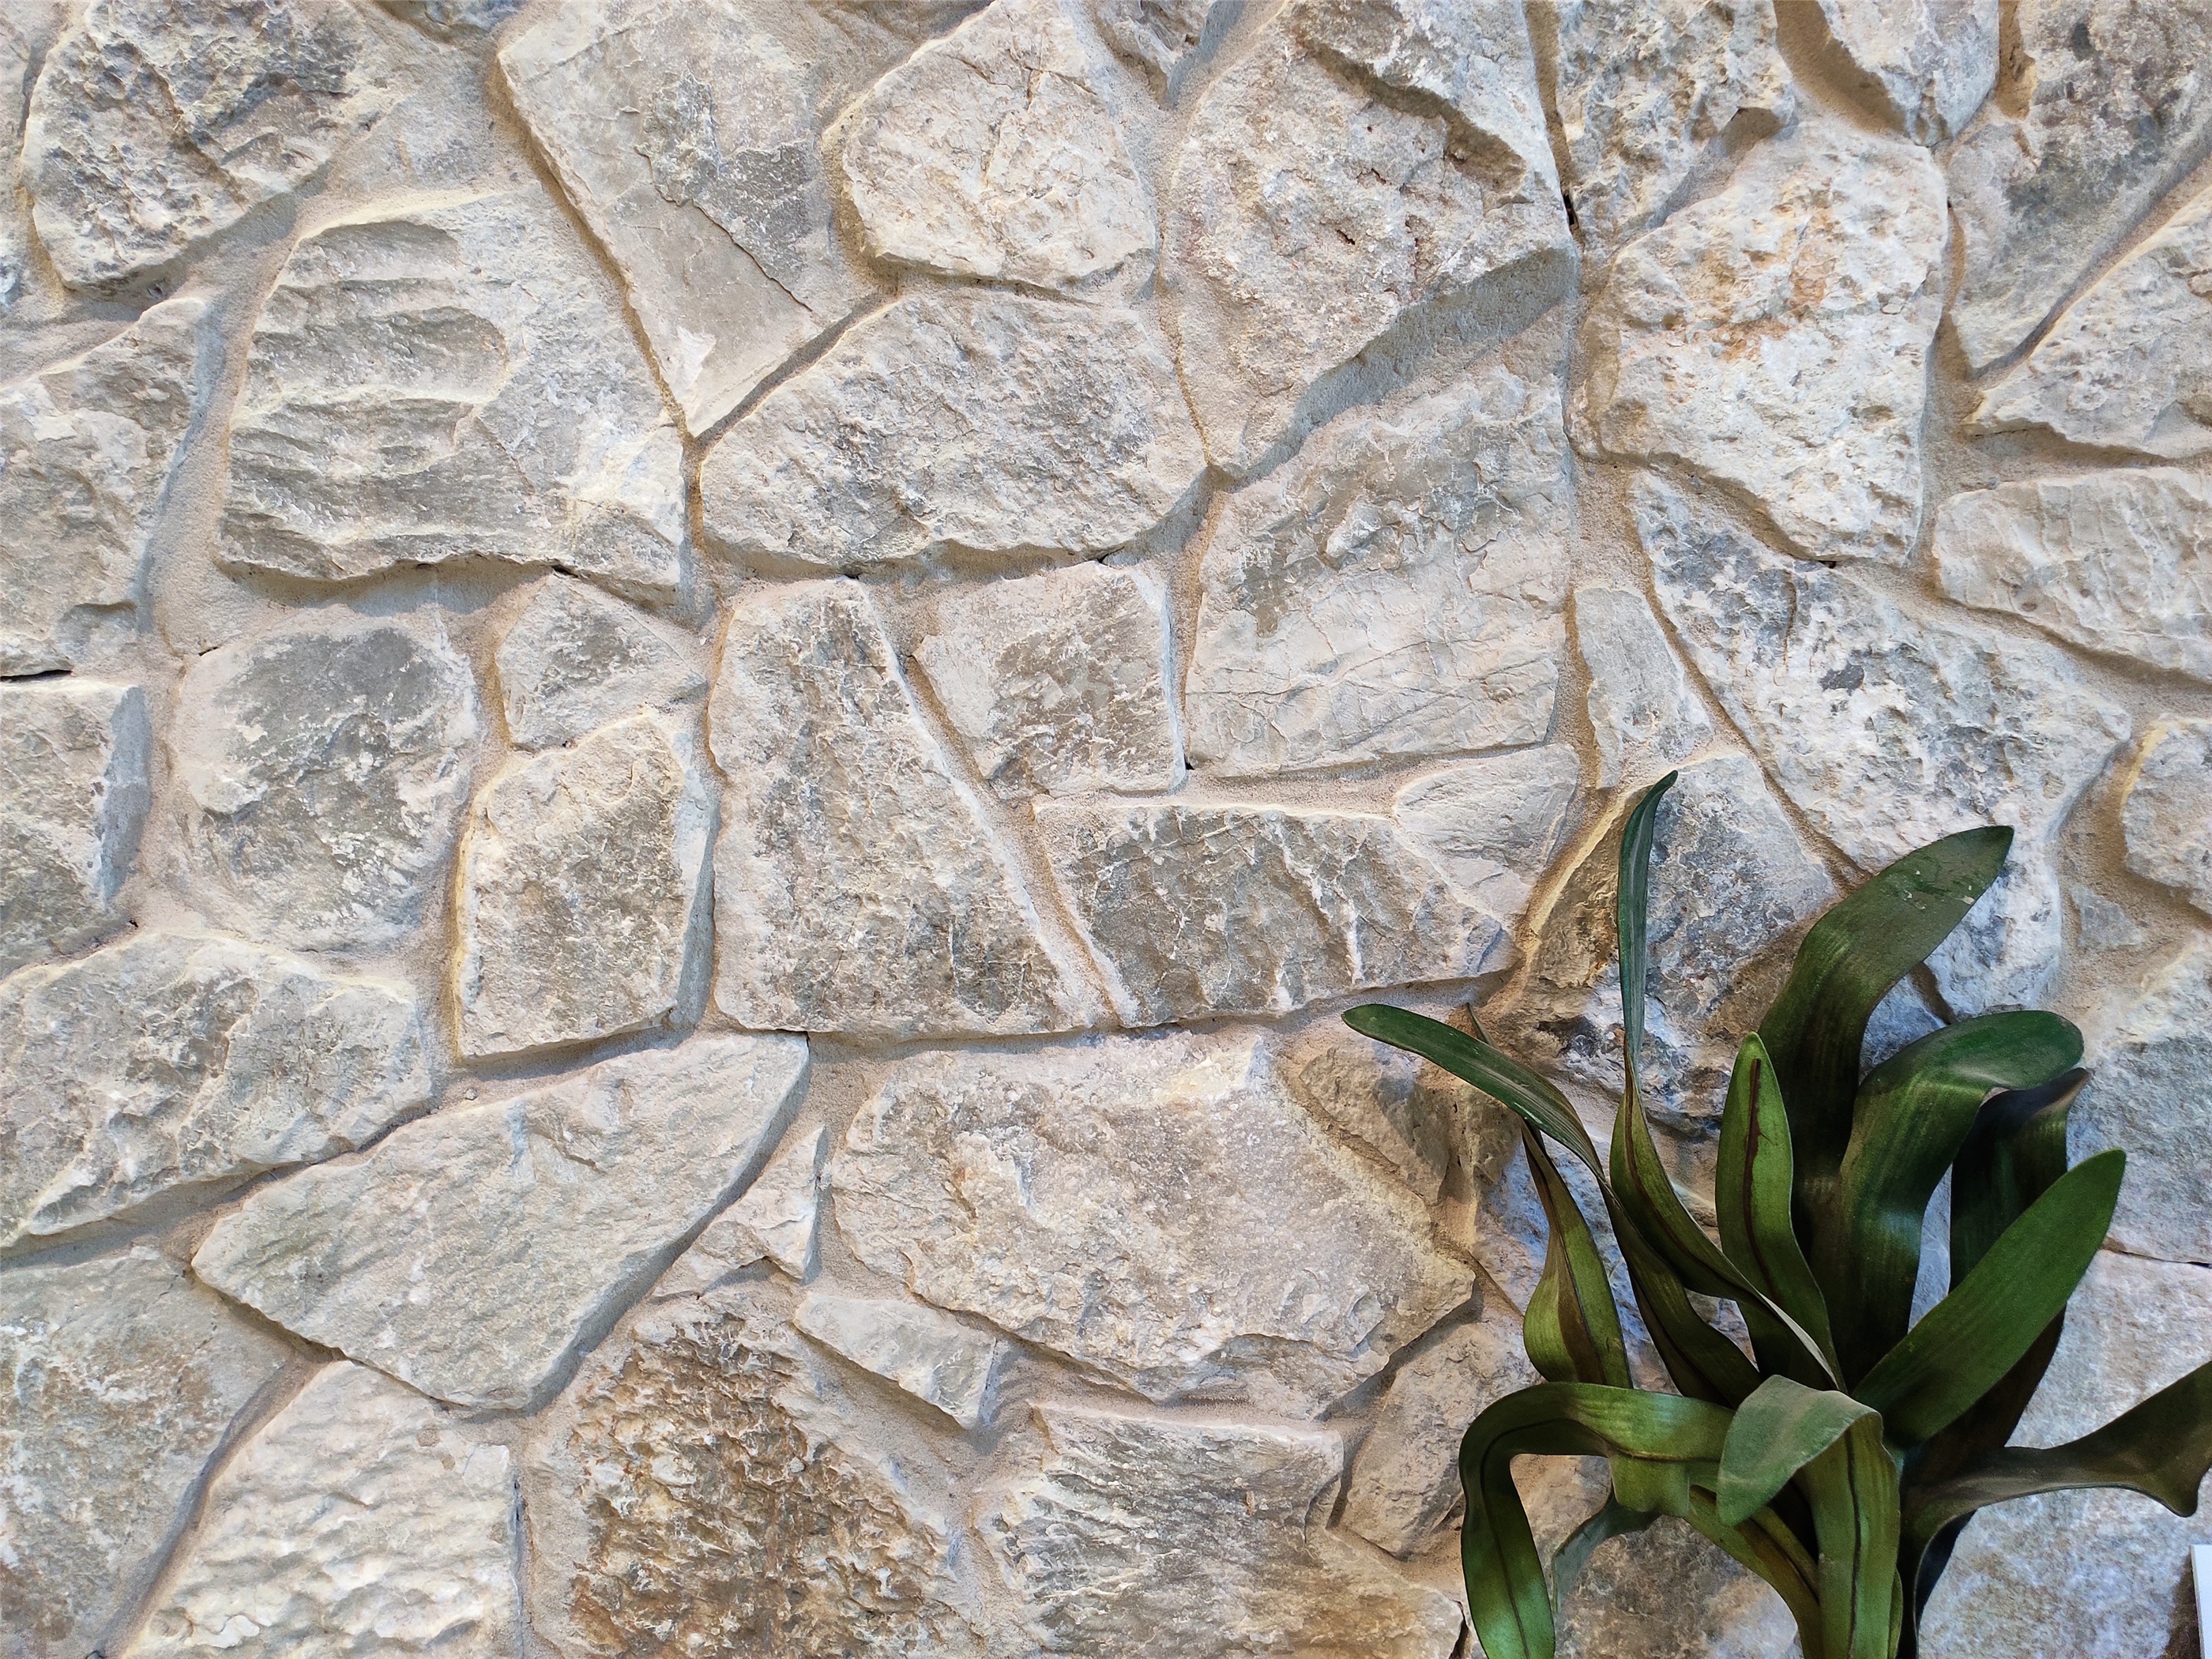 Beltana irregular limestone wall cladding seen in Aussietecture showroom in Alexandria, NSW Australia